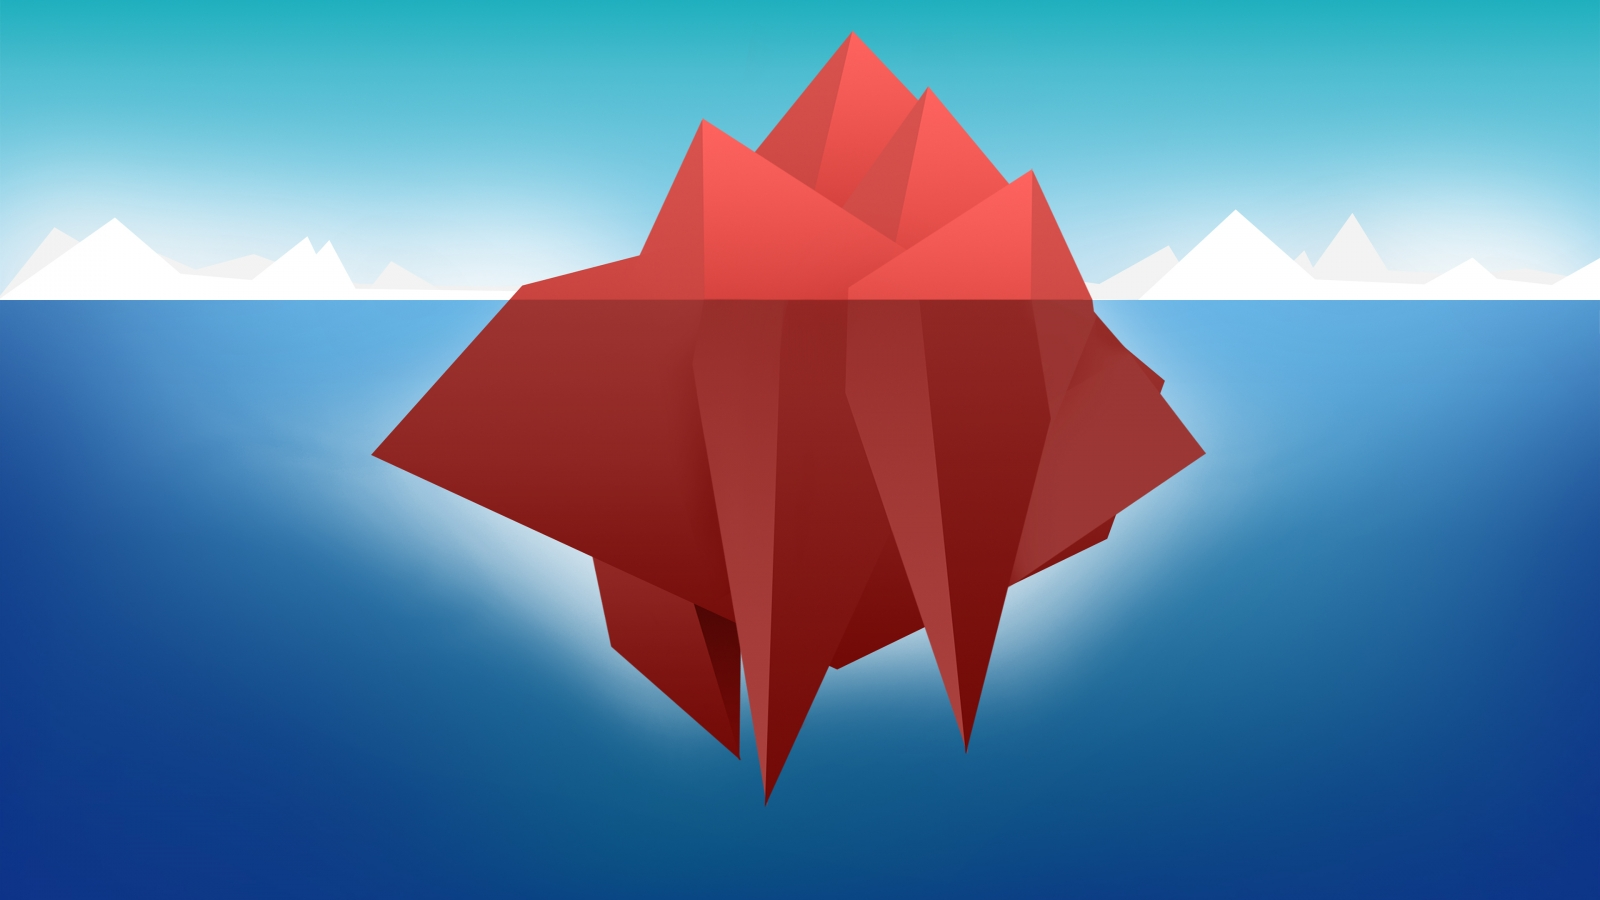 Red Minimal Iceberg for 1600 x 900 HDTV resolution